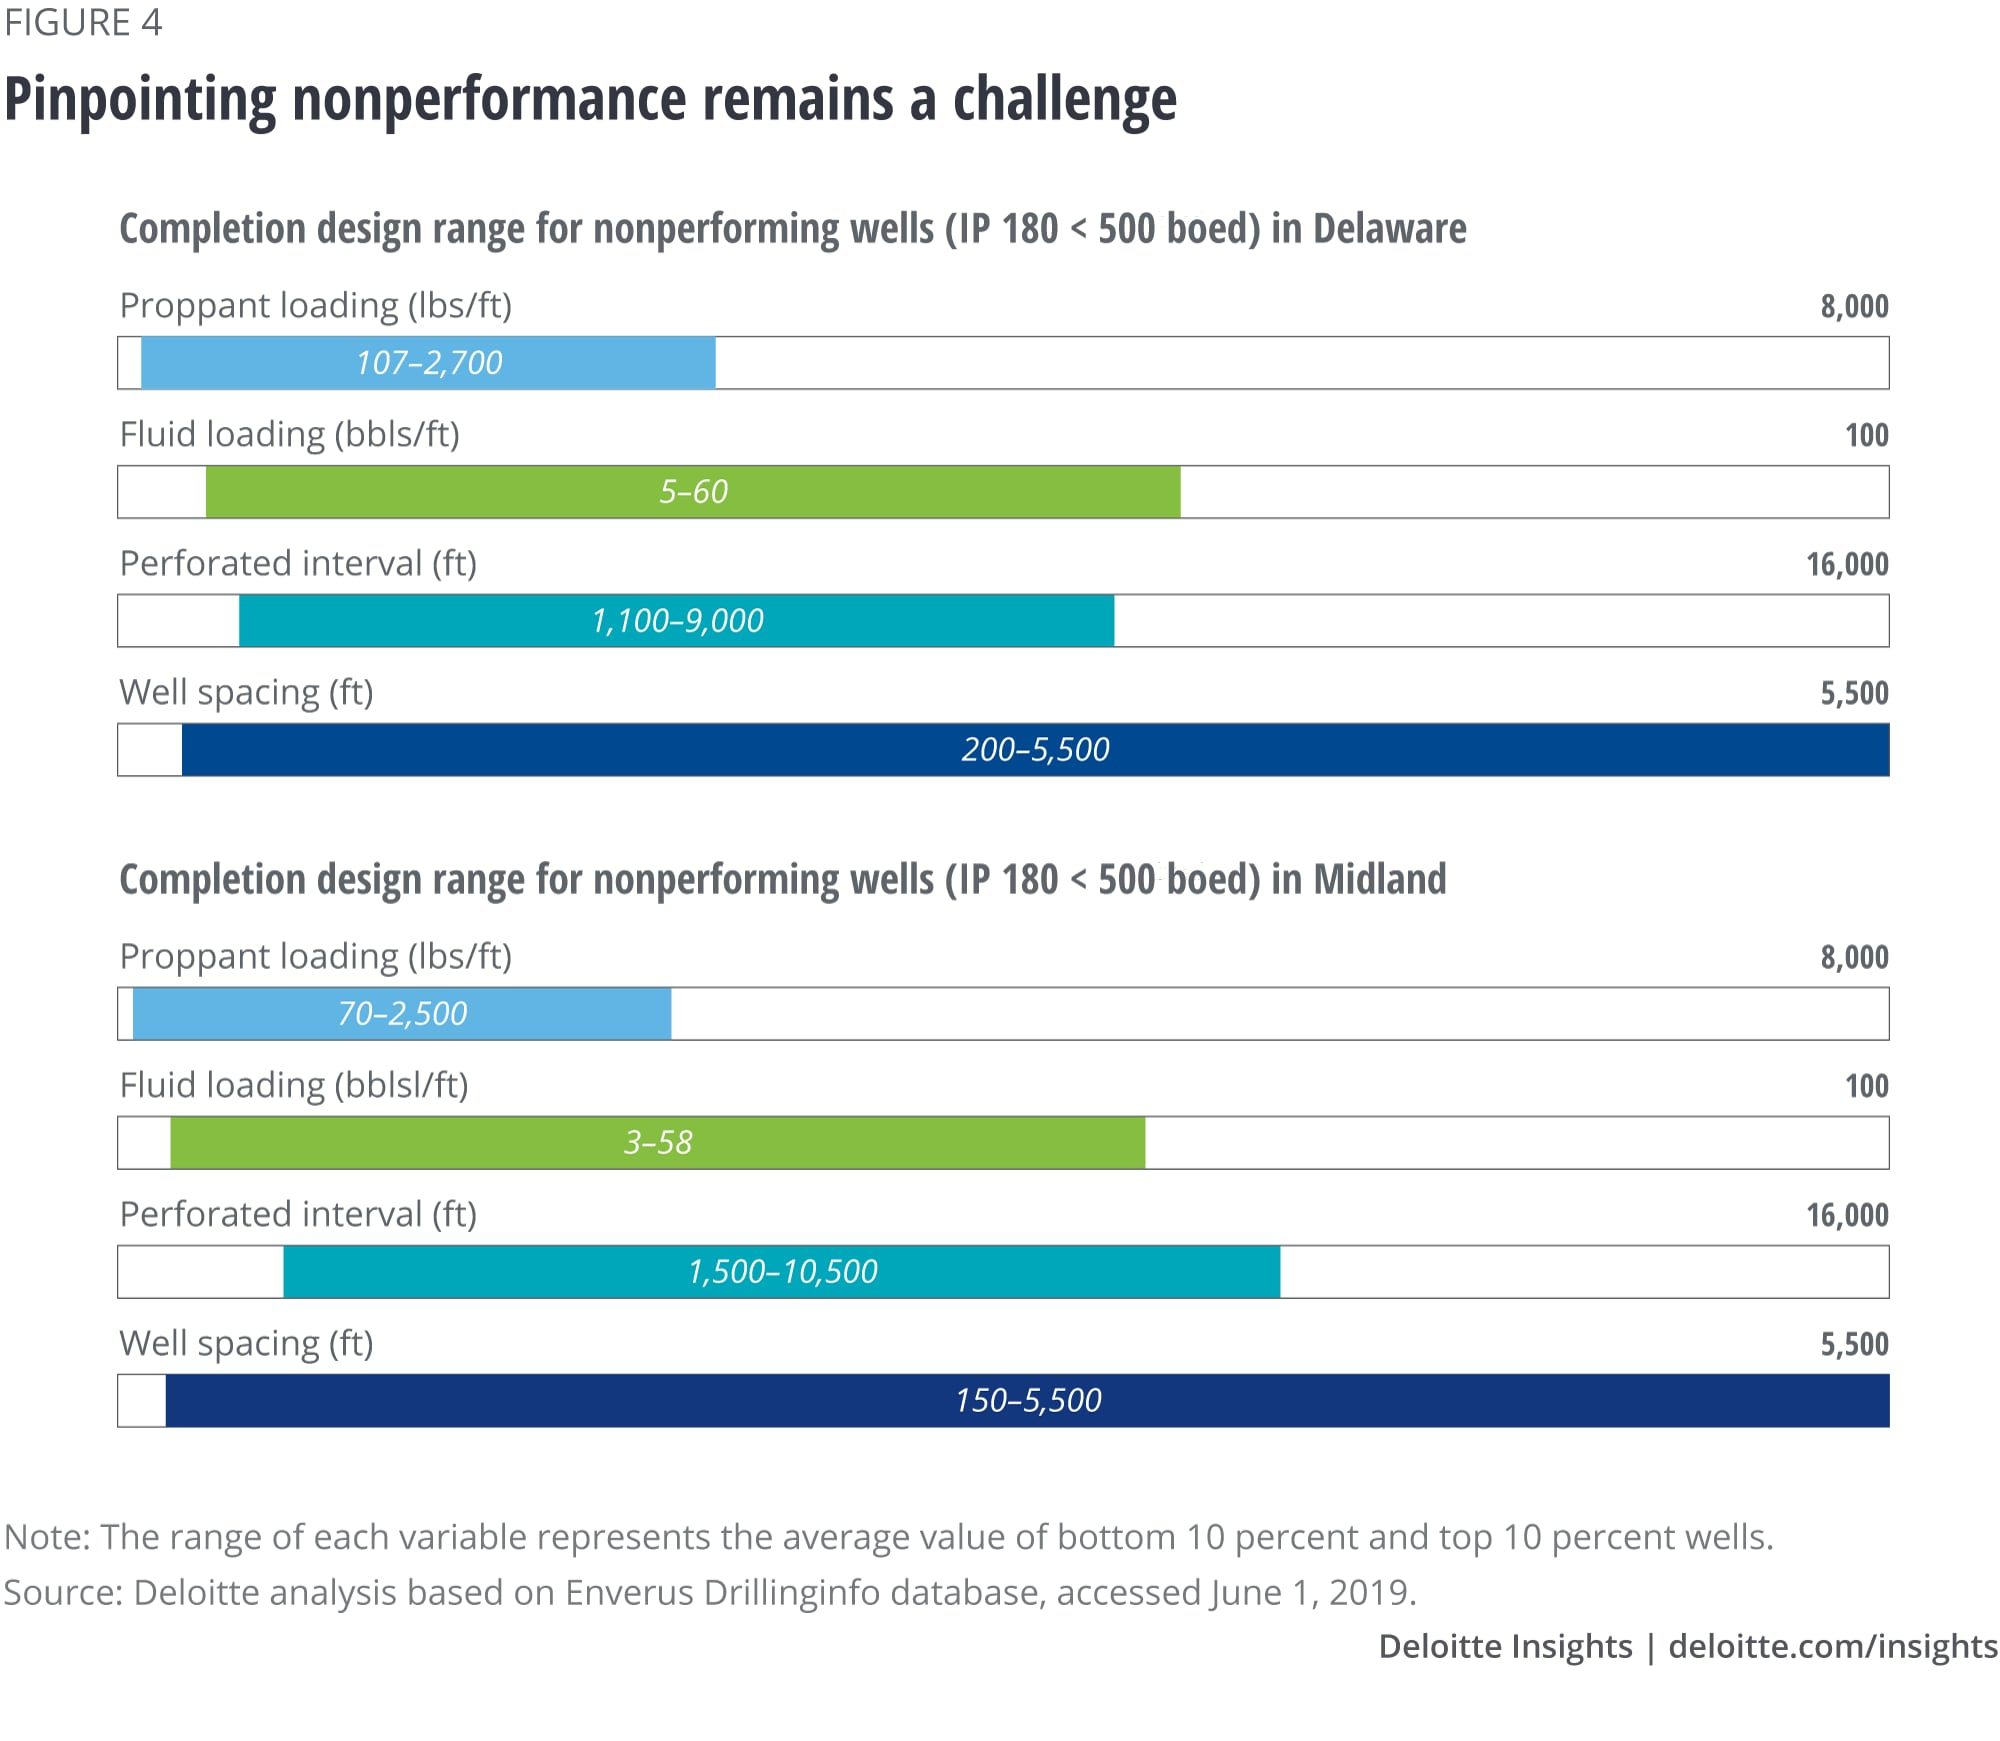 Pinpointing nonperformance remains a challenge